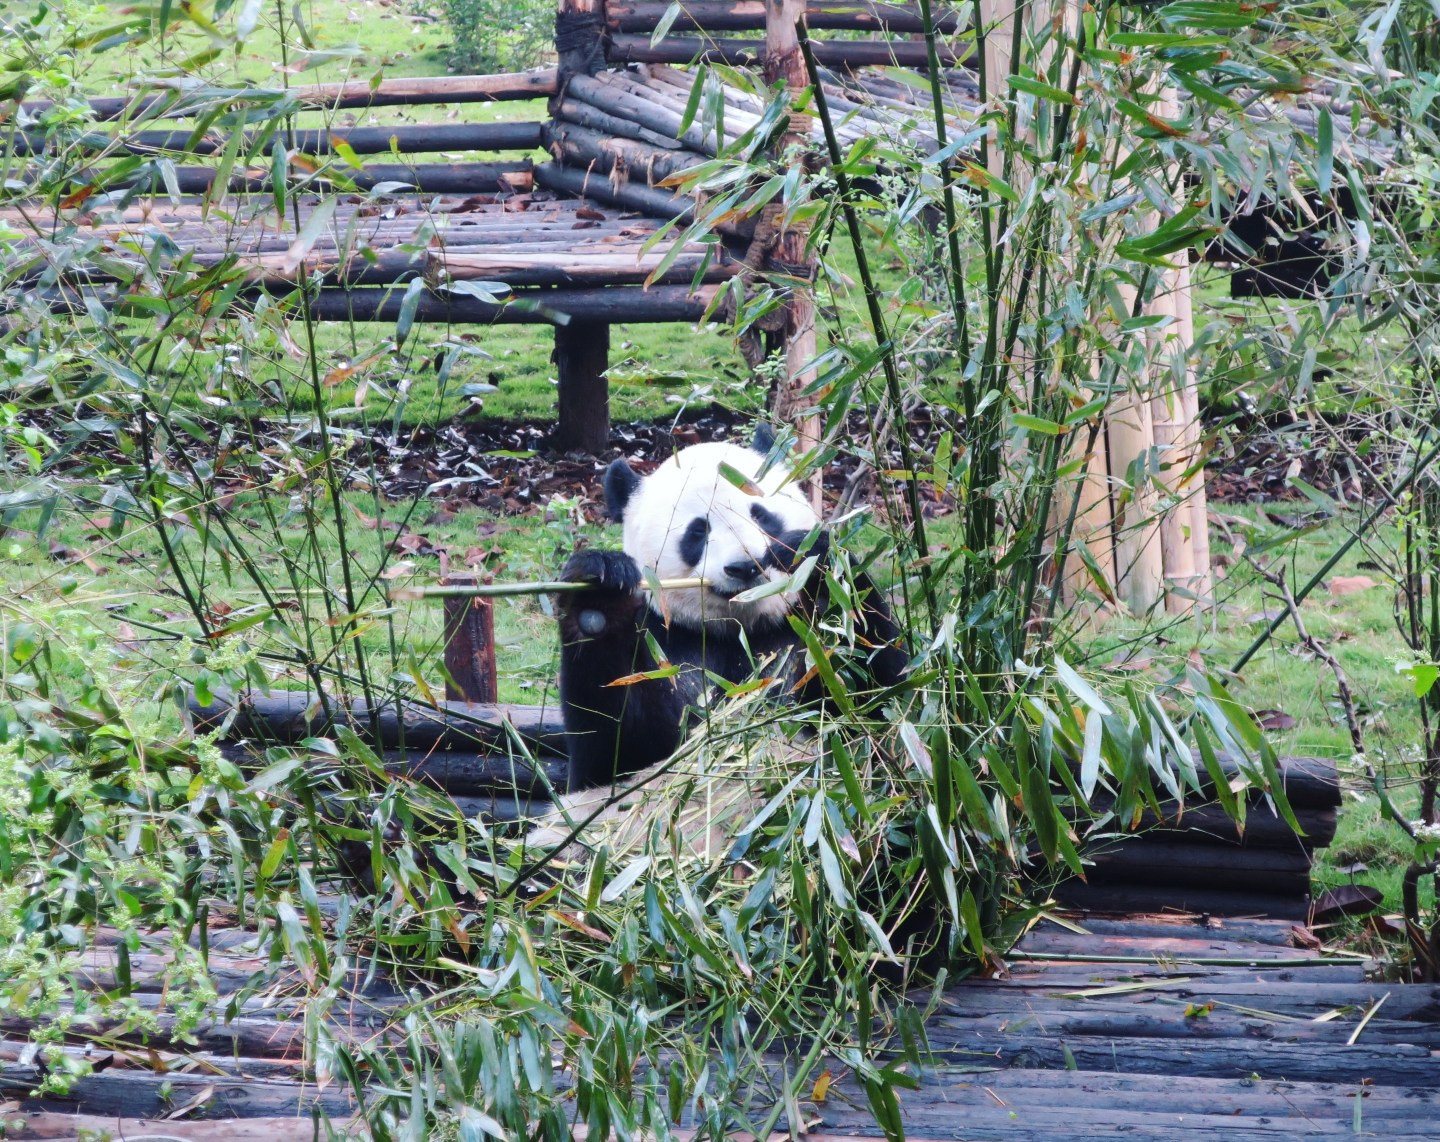 Panda at Chengdu Research base